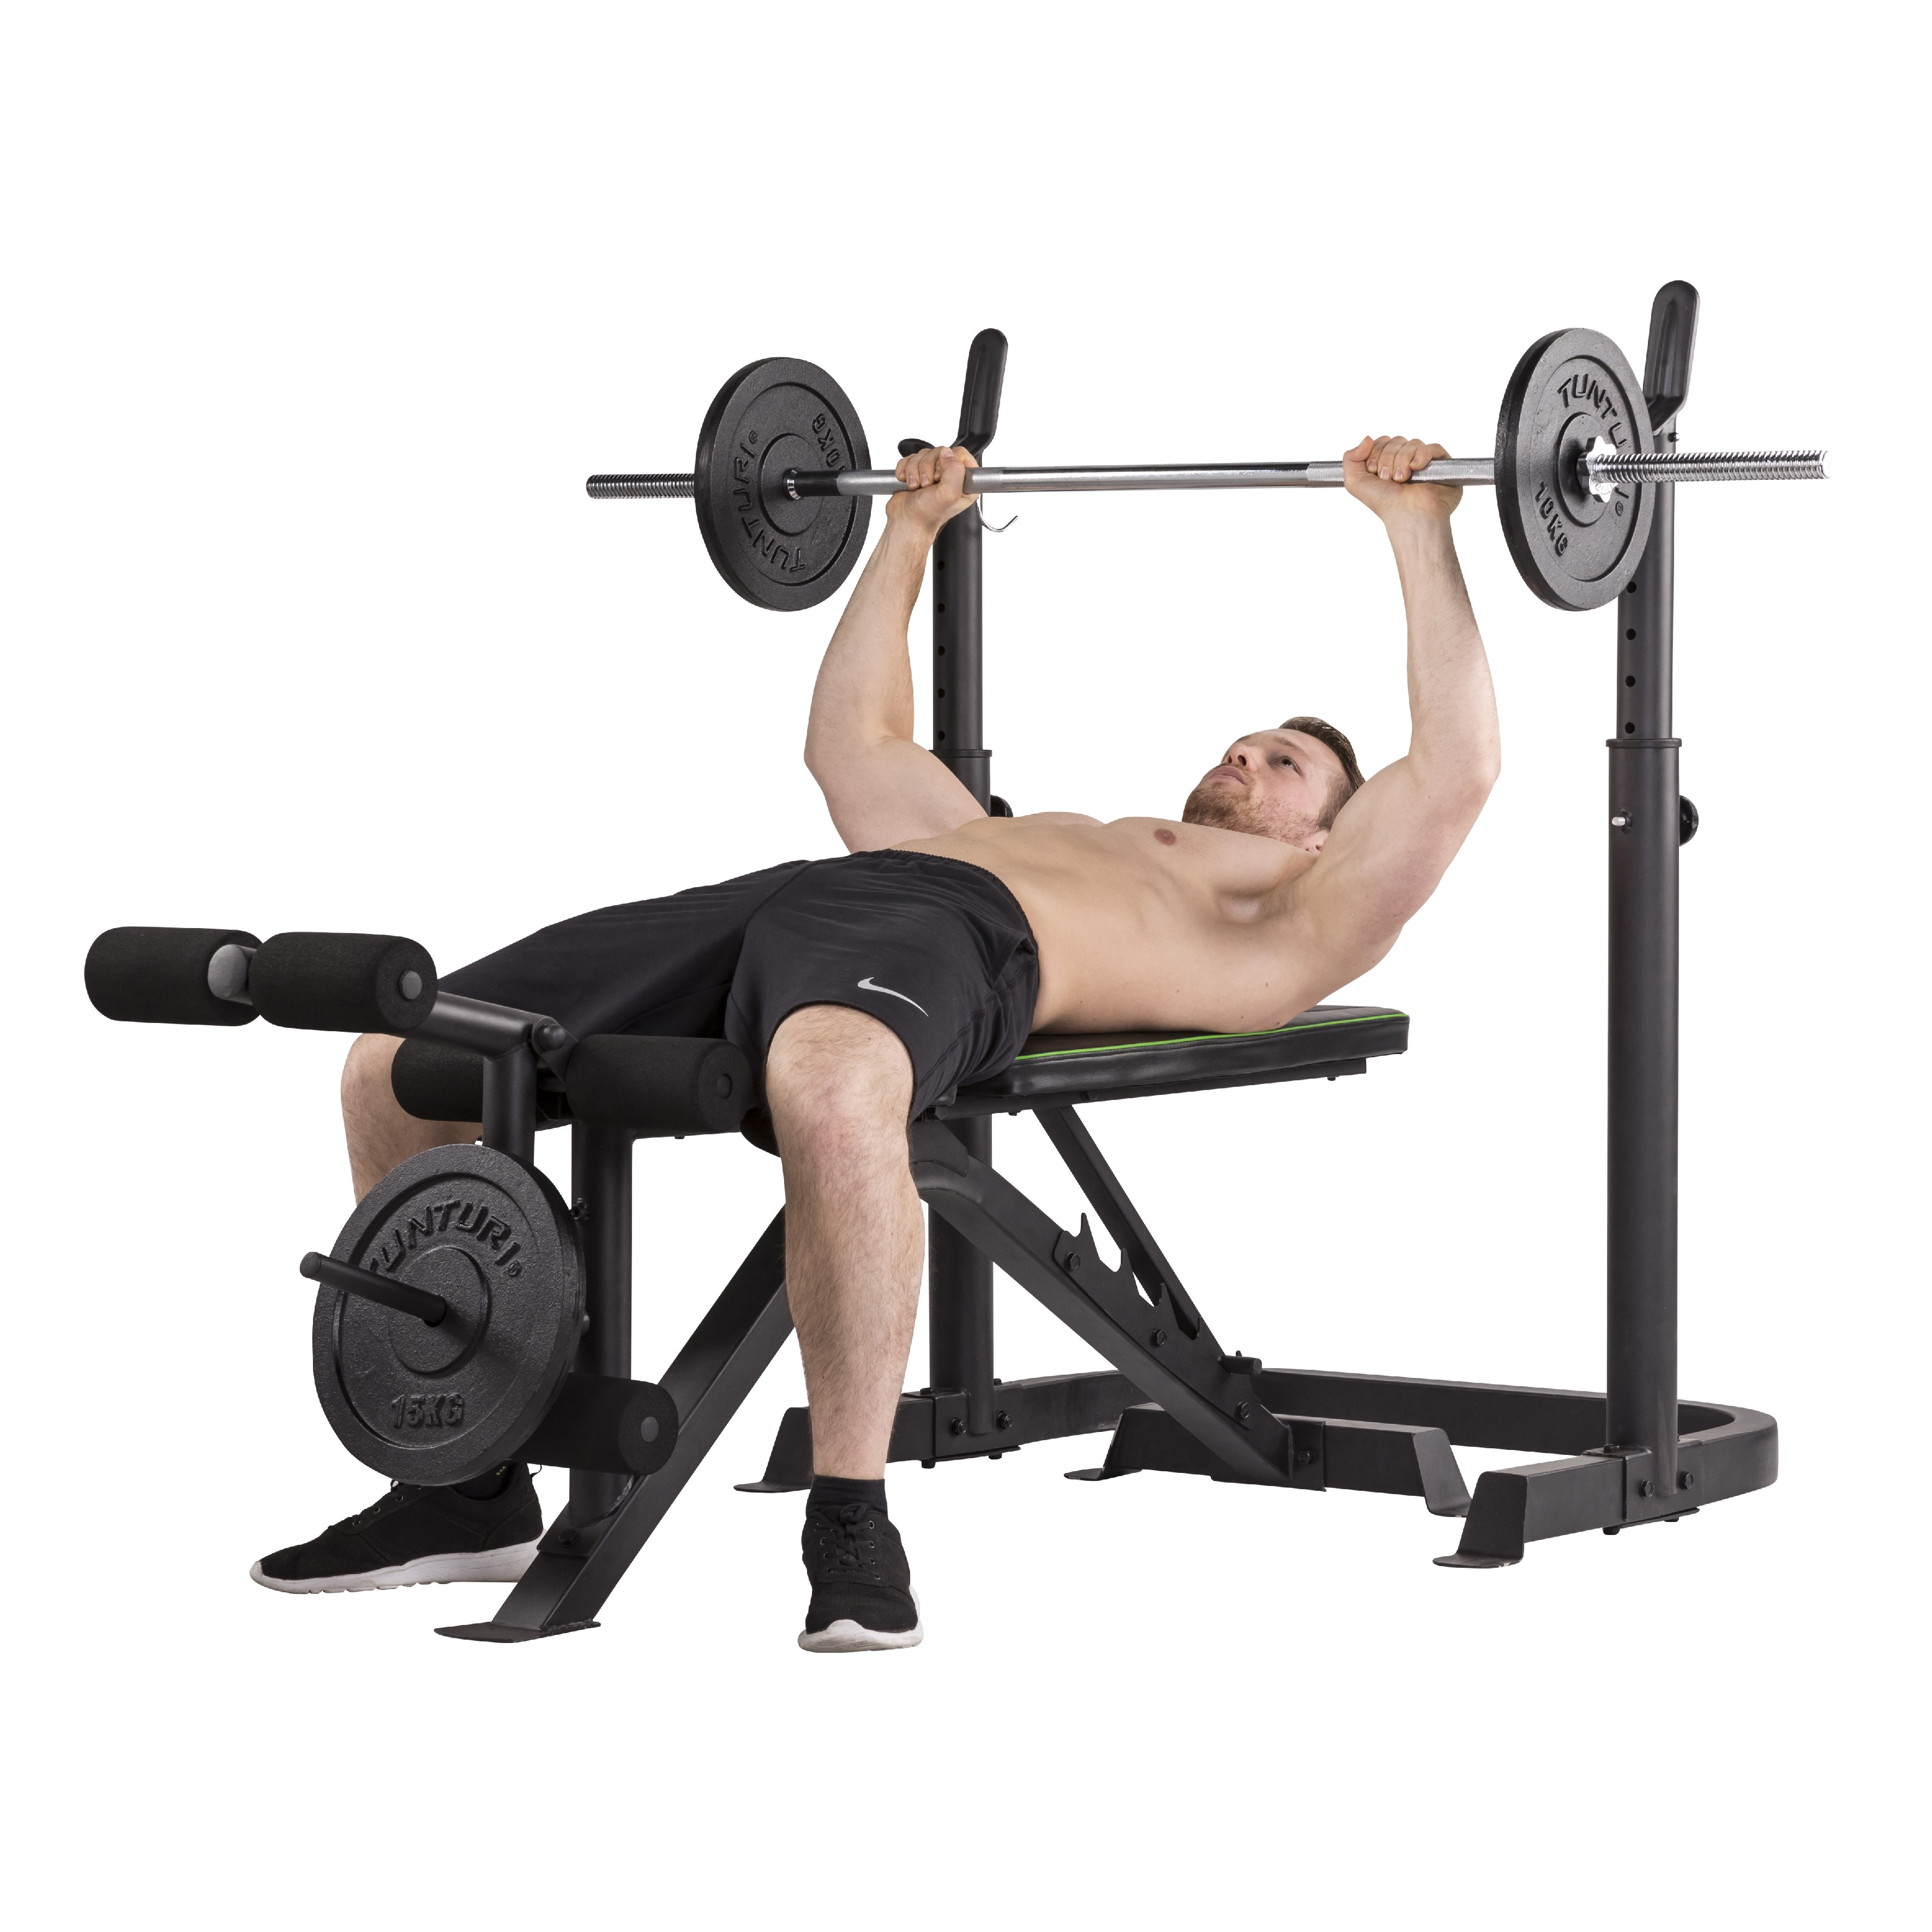 golds global s p weight lifting inflow home exercise cancel gold bar fitness body gym olympic res bench inflowcomponent content workout press